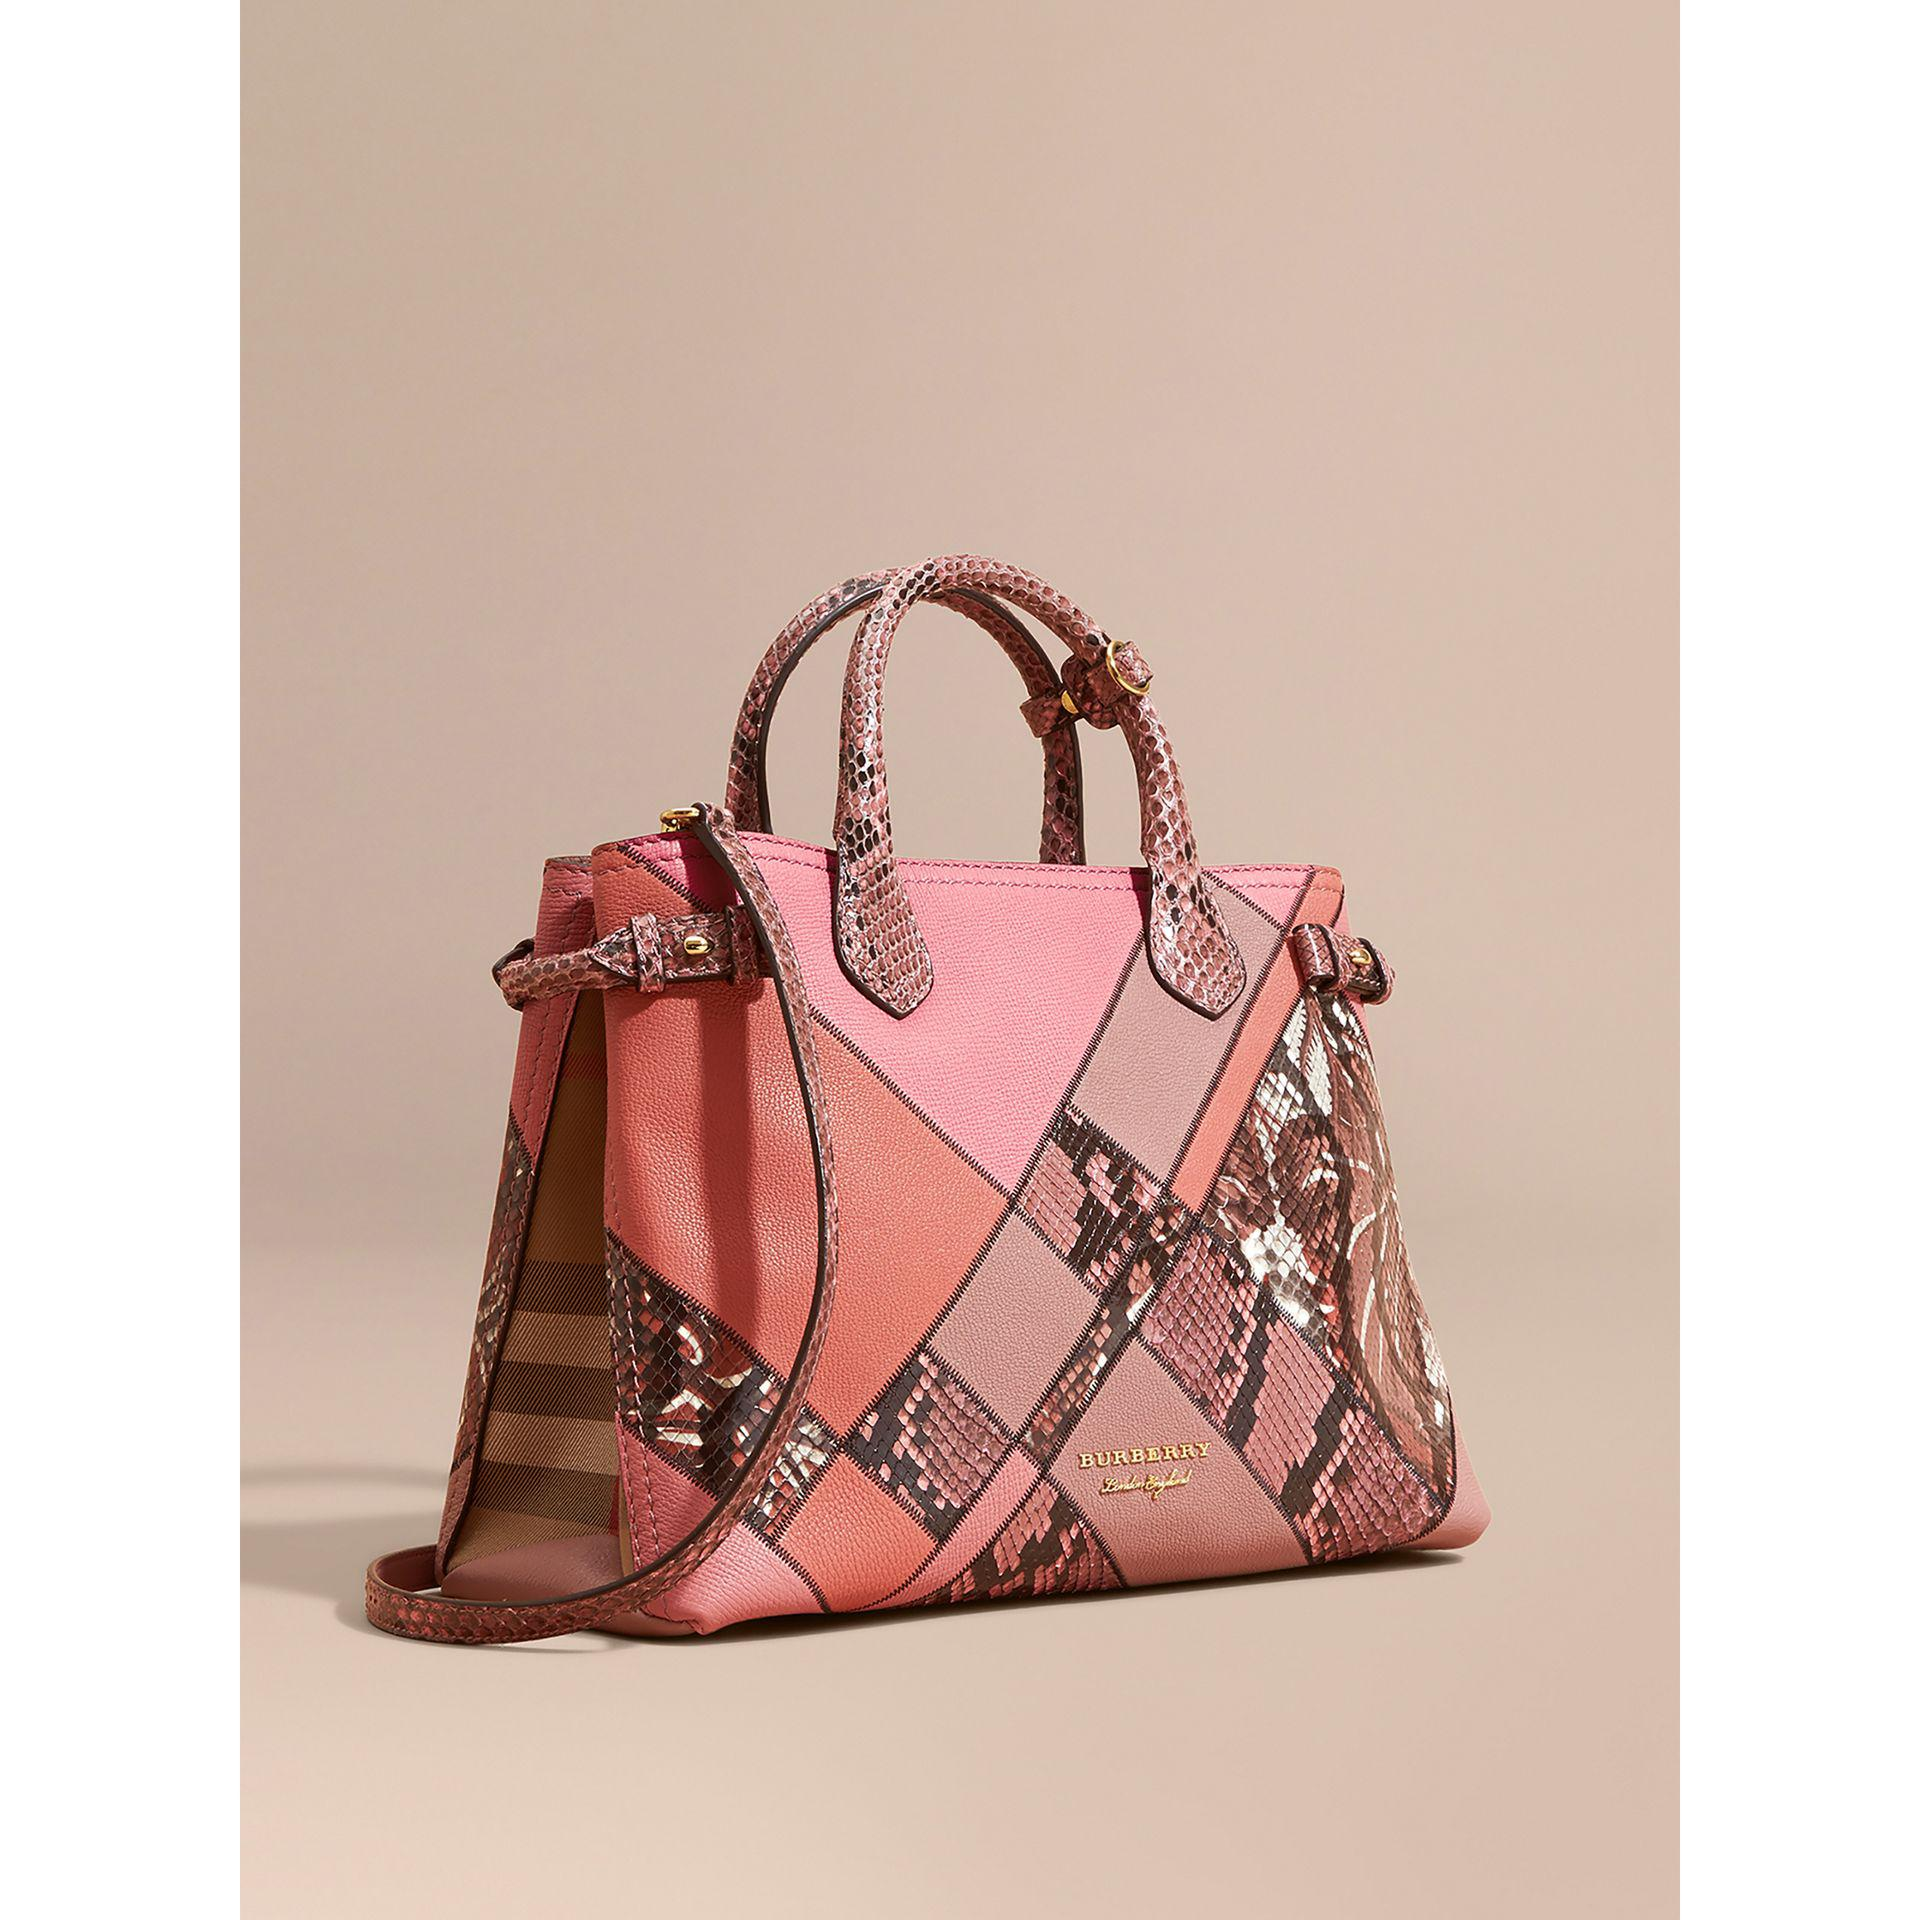 ccf1f959af Burberry The Medium Banner In Patchwork Leather And Python - Lyst